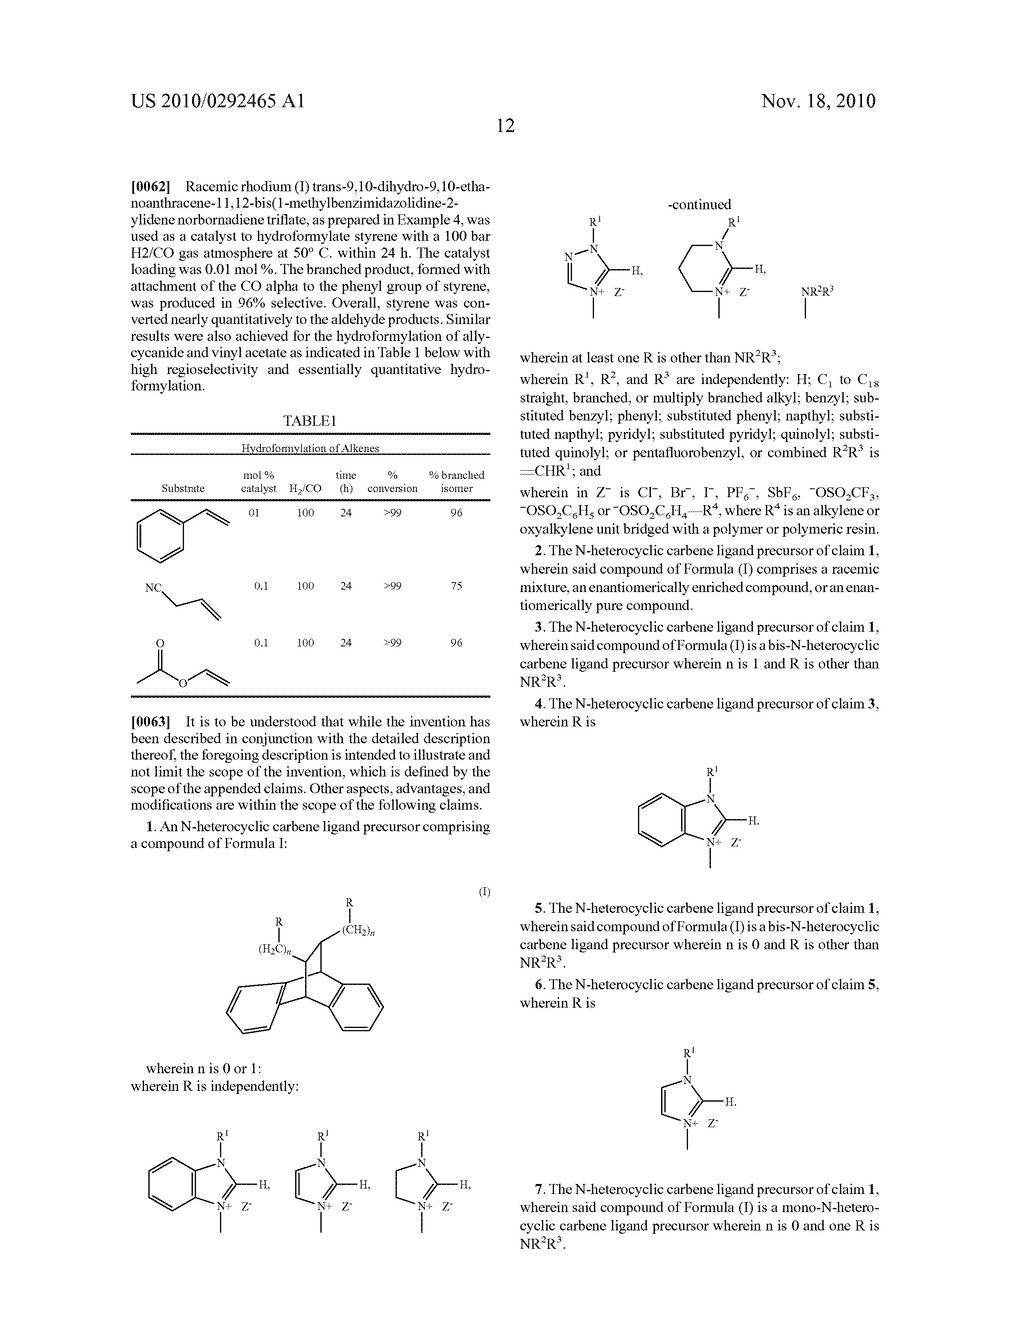 CATALYSTS CONTAINING N-HETEROCYCLIC CARBENES FOR ENANTIOSELECTIVE SYNTHESIS - diagram, schematic, and image 17